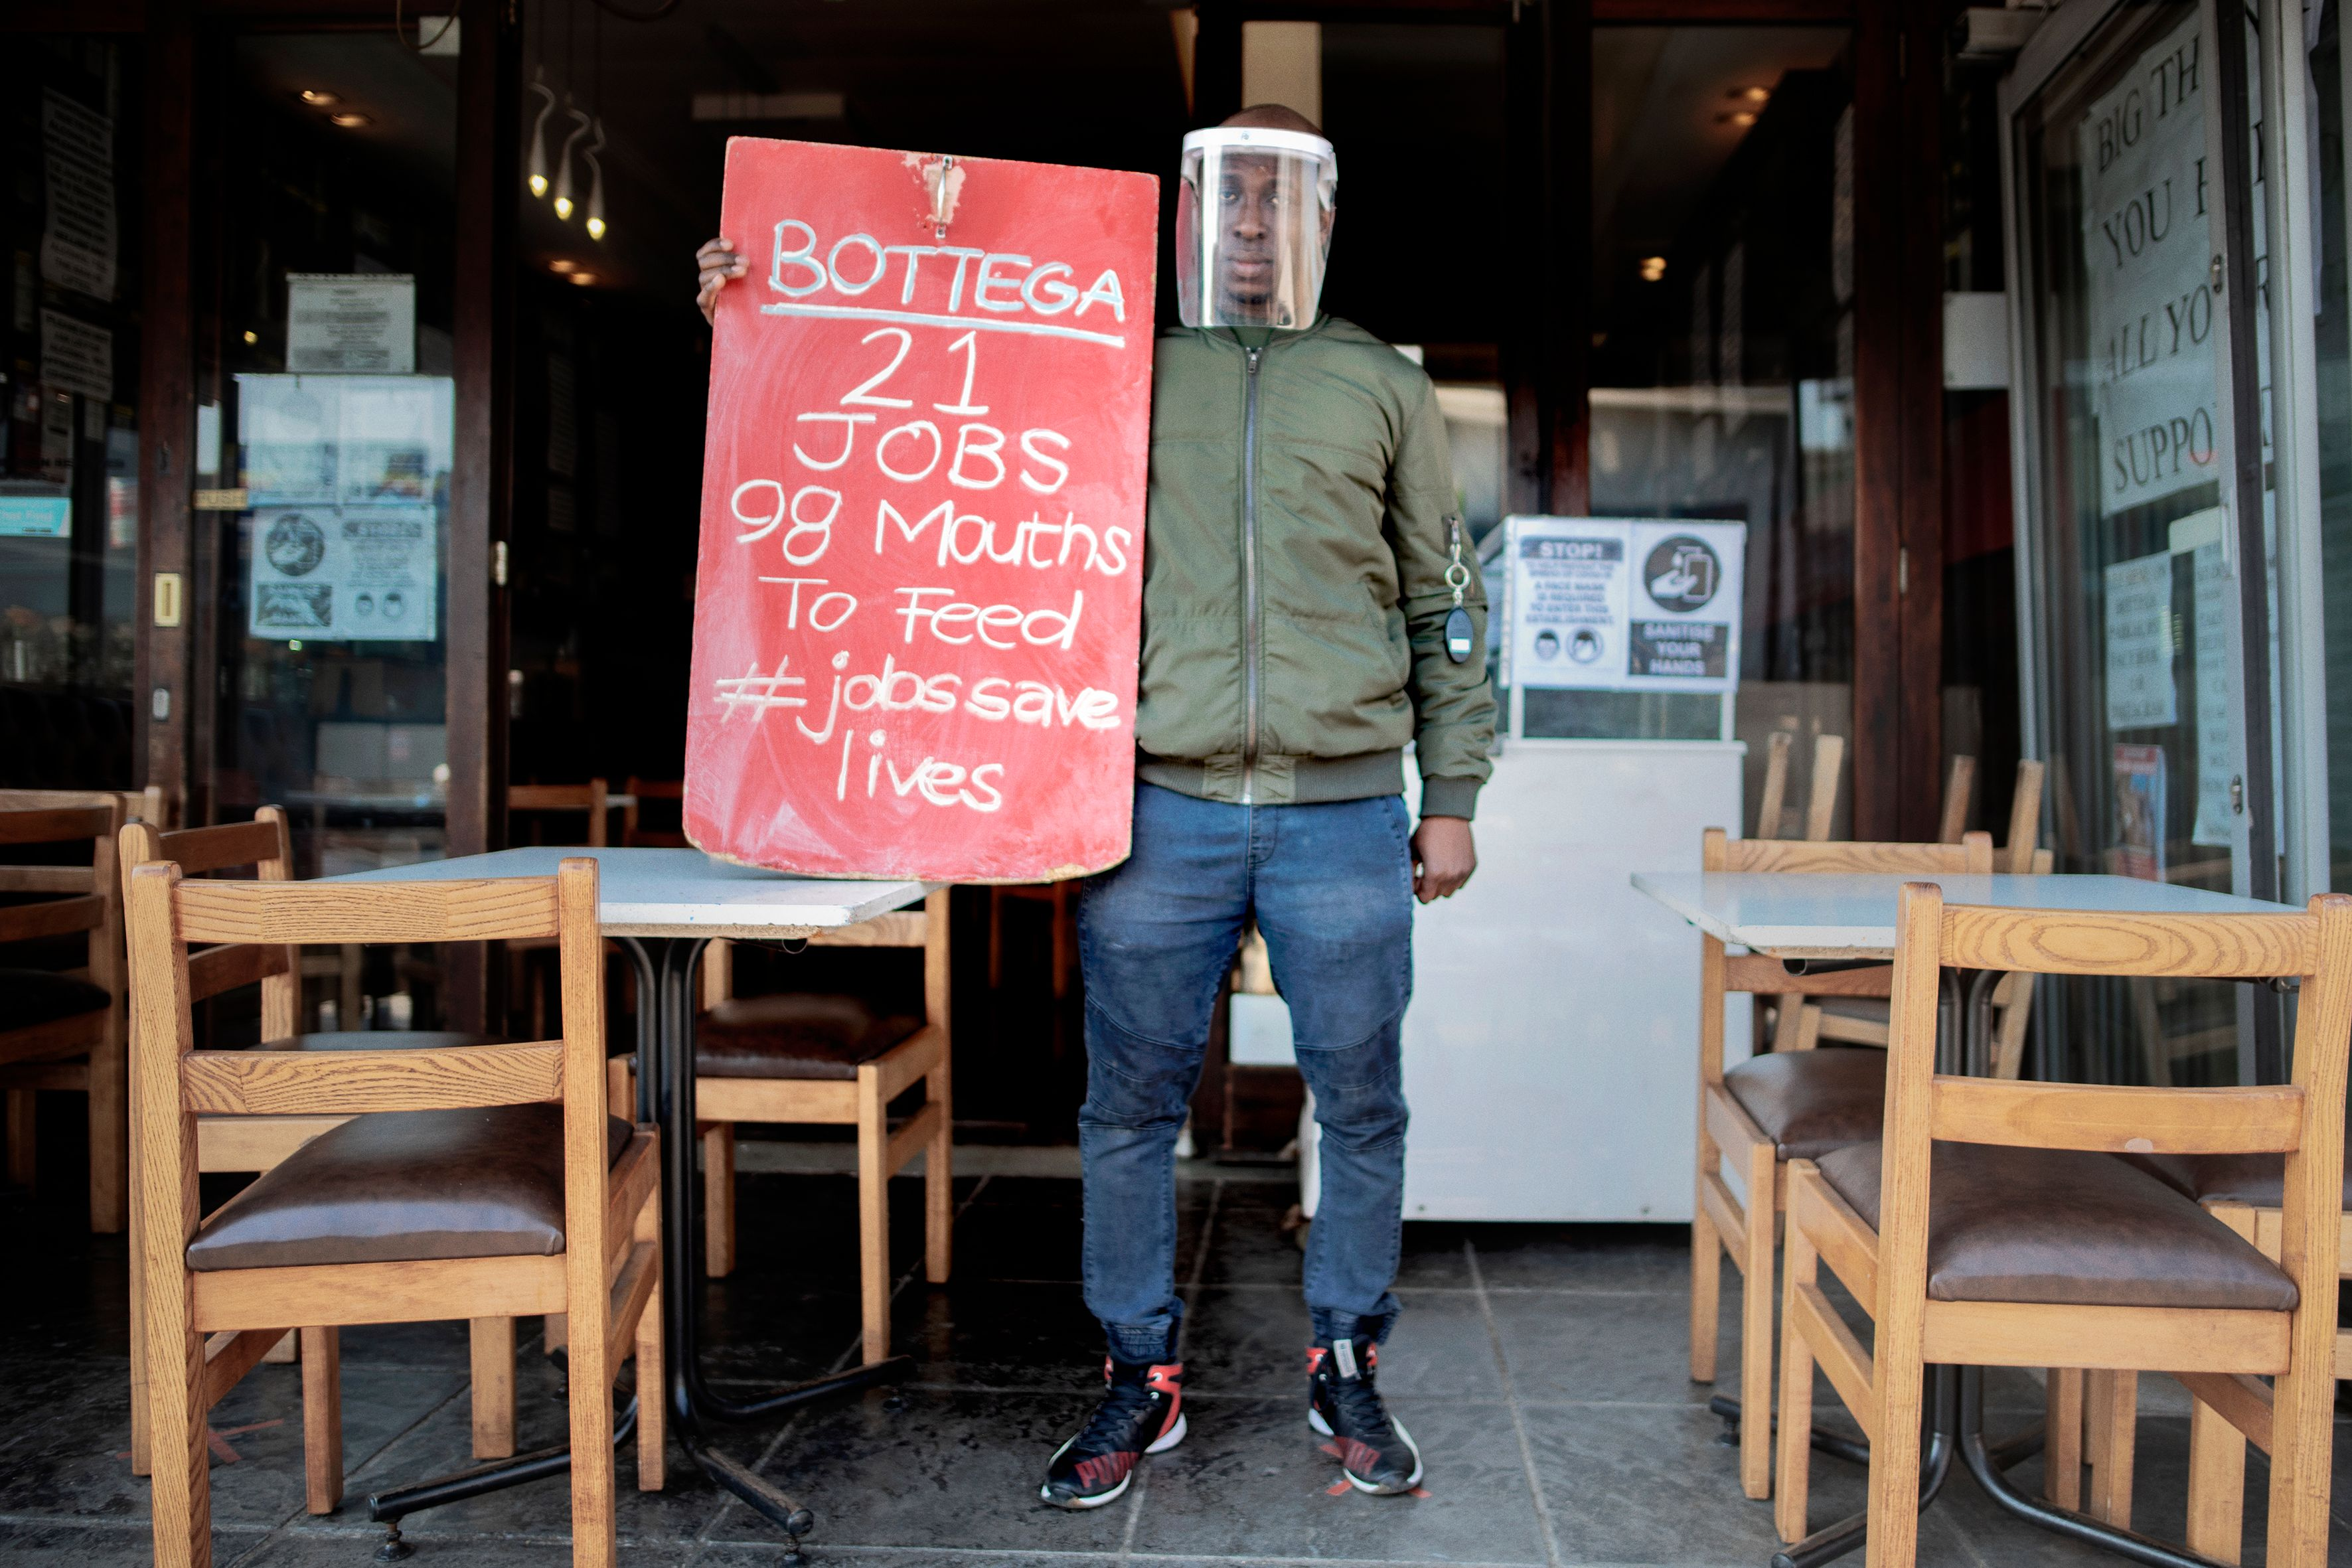 TOPSHOT - The manager of a restaurant in Parkhurst, Johannesburg, holds a banner during a national protest, organised by Restaurant Association of South Africa (RASA), against the national lockdown regulations the South African government has issued to fight the rise of COVID-19 coronavirus cases, on July 22, 2020. - The reintroduction on the ban on alcohol sales and a night curfew by the South African government will have a negative economic impact on the hospitality industry. (Photo by Luca Sola / AFP) (Photo by LUCA SOLA/AFP via Getty Images)